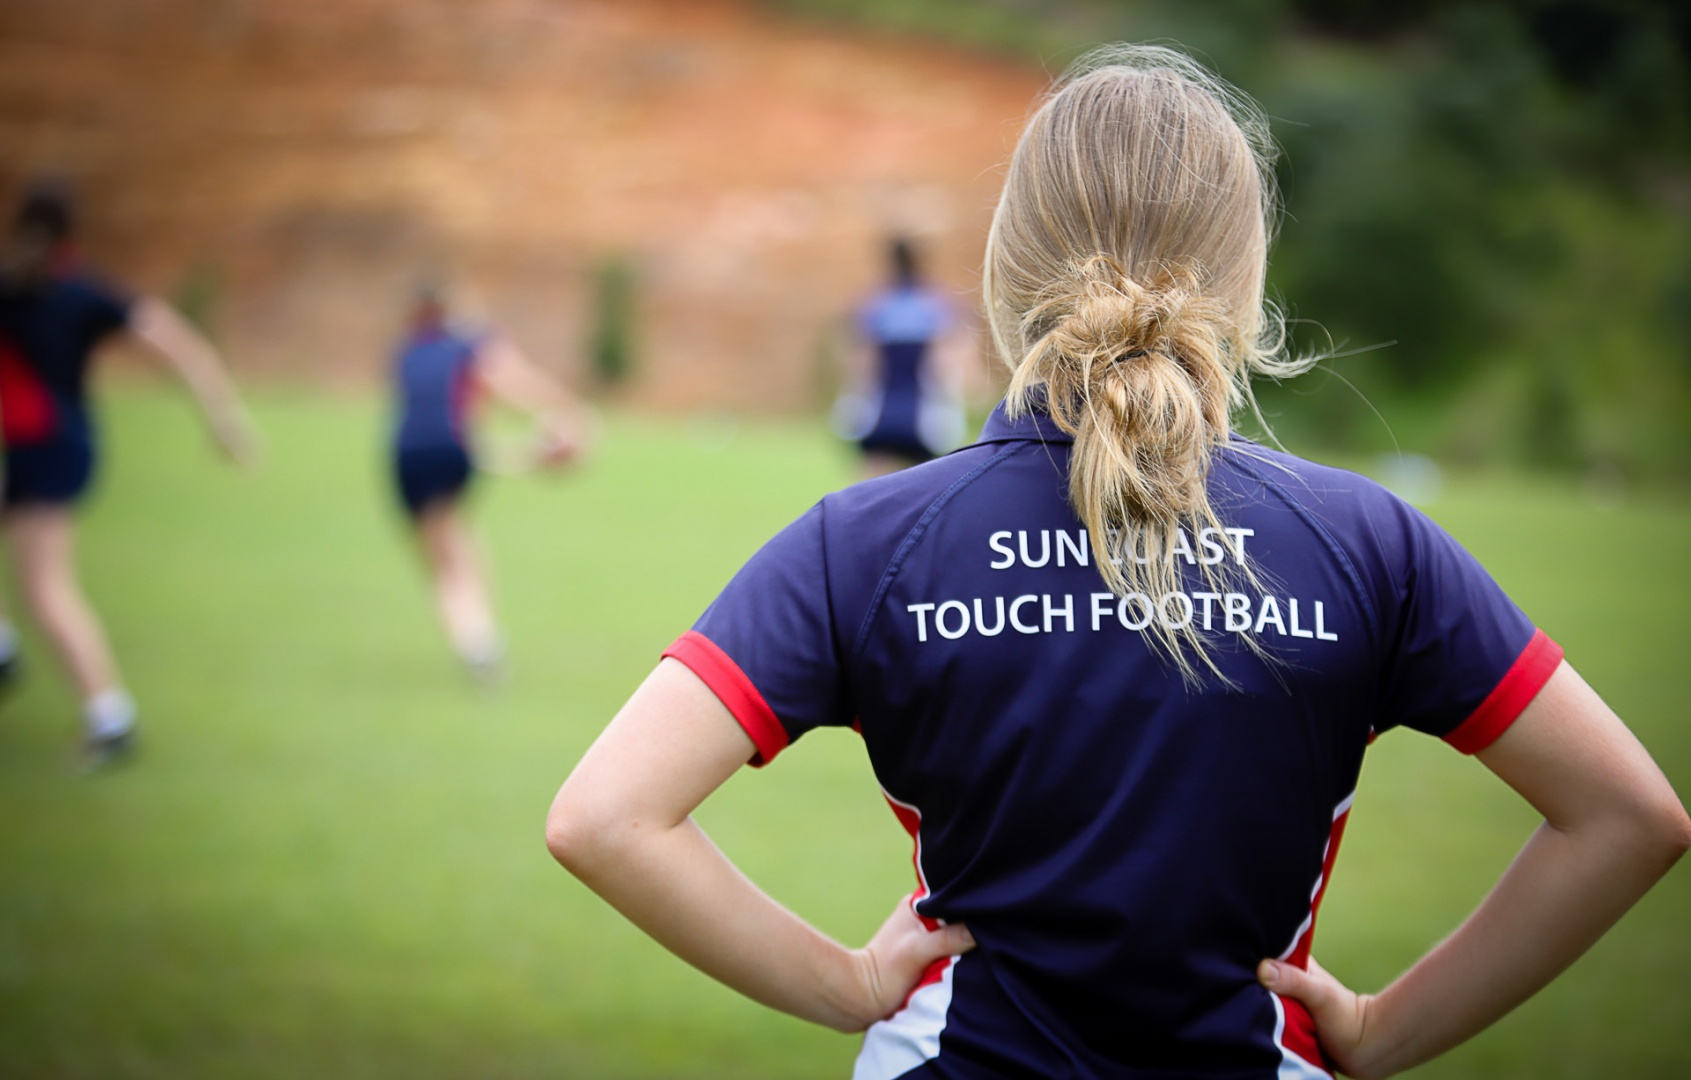 Suncoast-Touch-Football-03